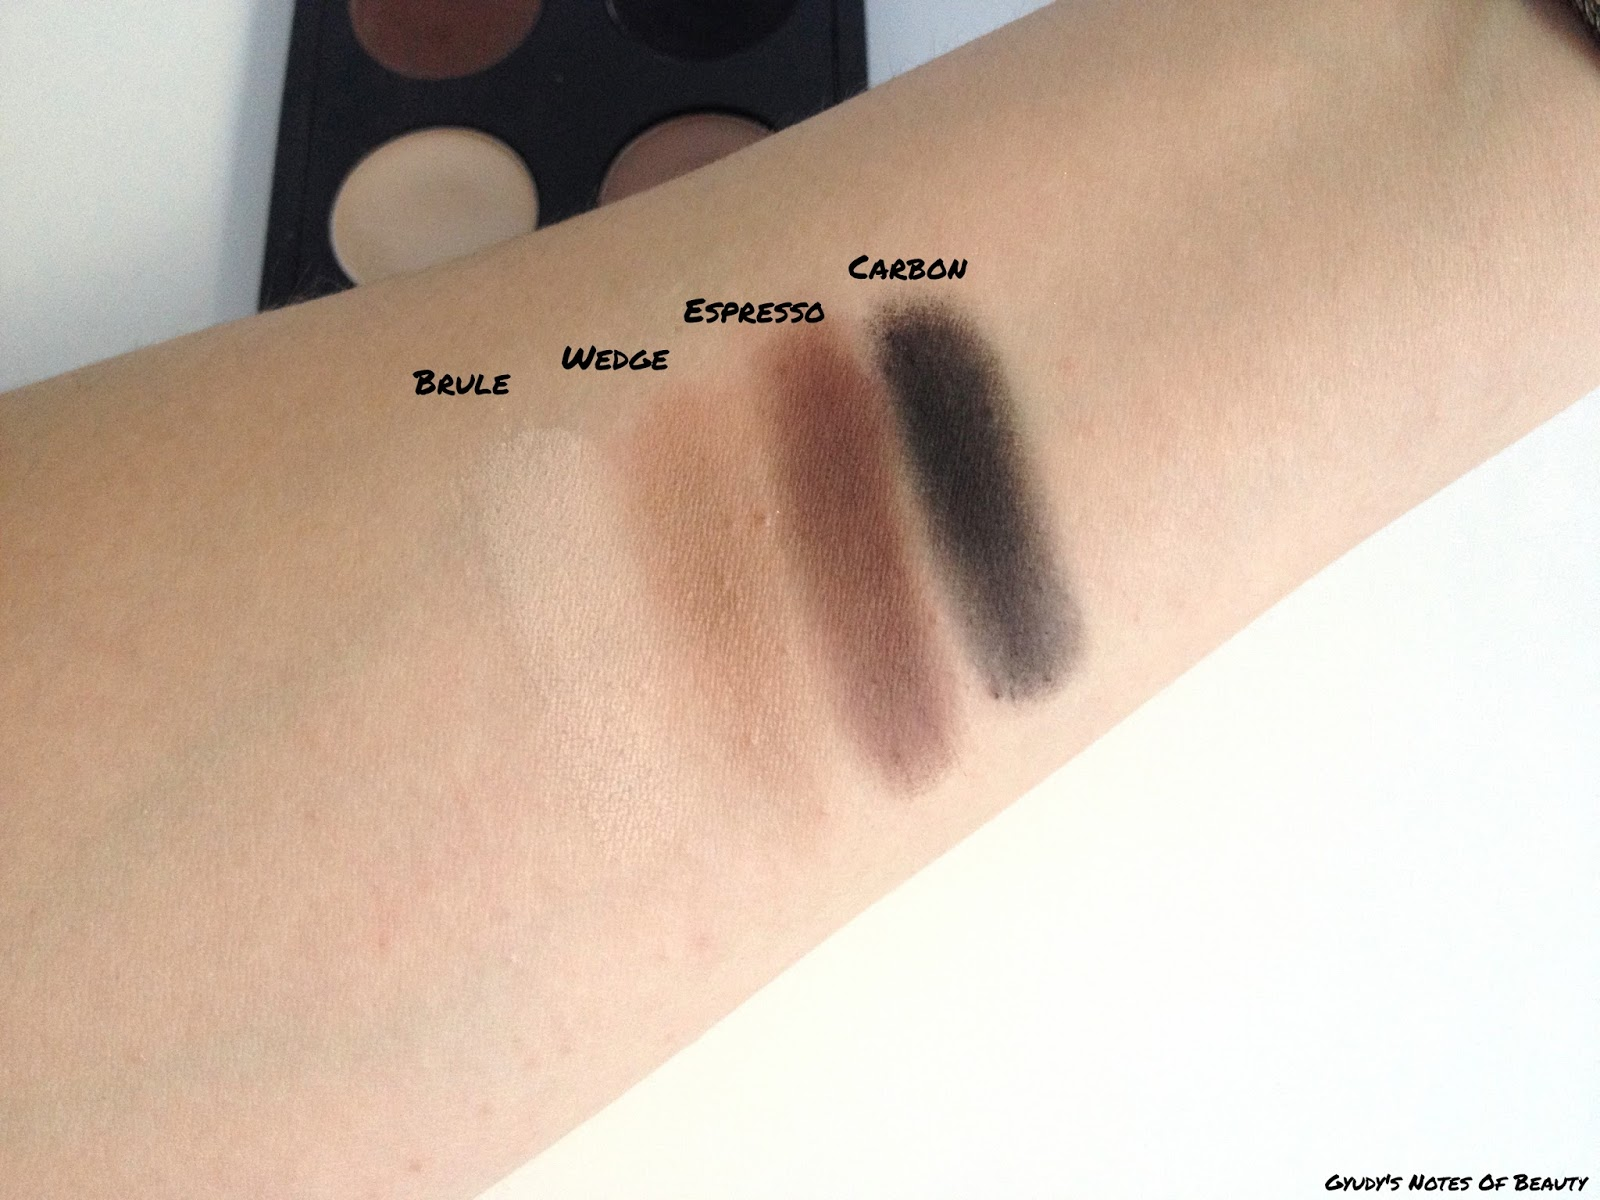 MAC Brule Wedge Espresso Carbon Swatches